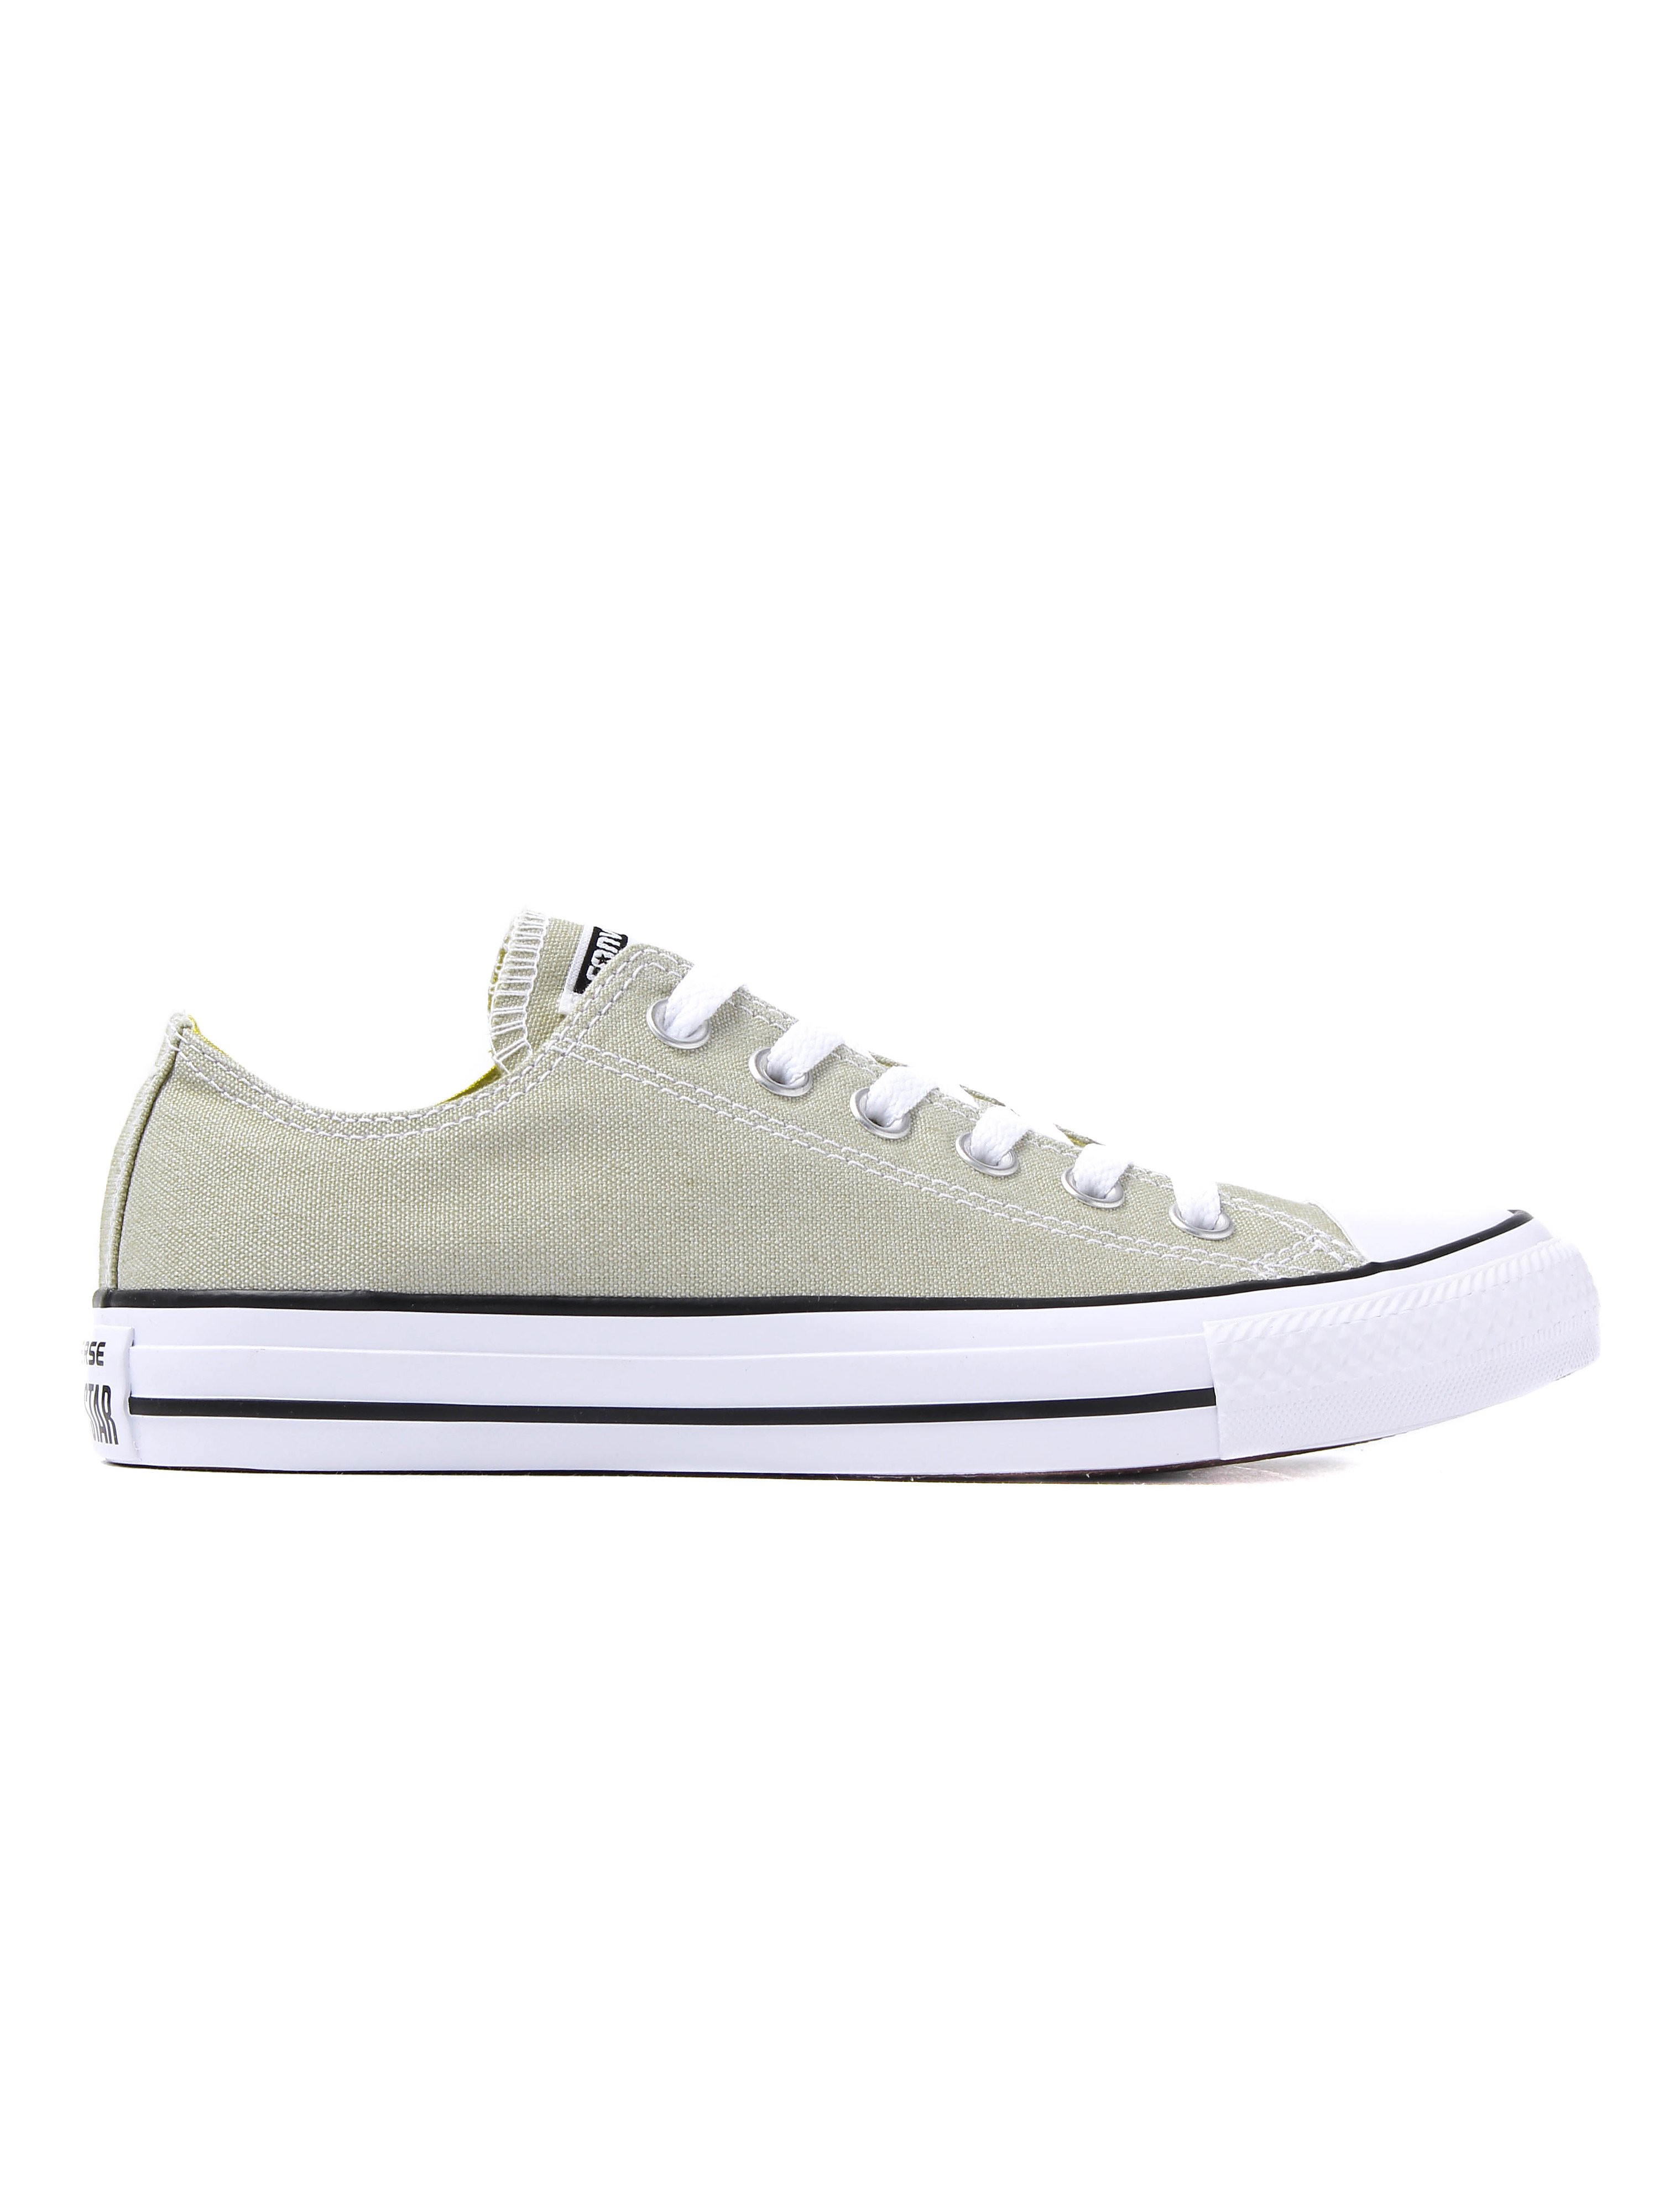 Converse Unisex Chuck Taylor All Star OX Trainers - Light Surplus